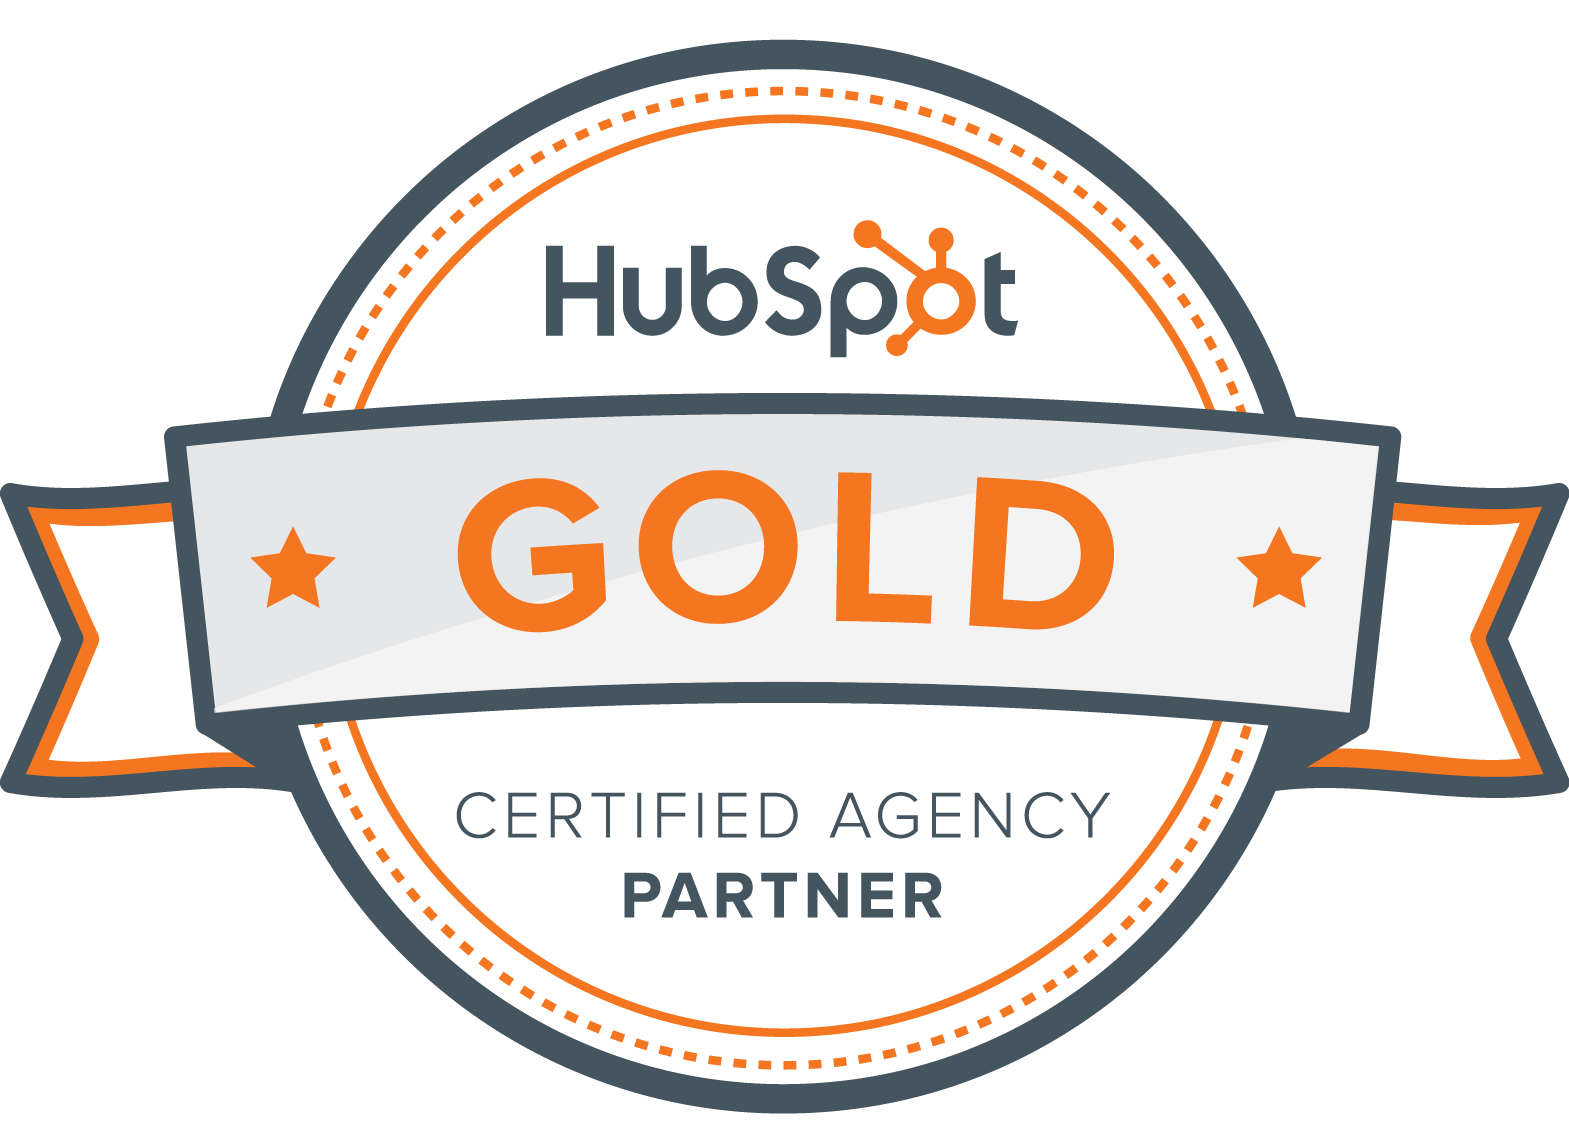 hubspot consultant analytics that profit